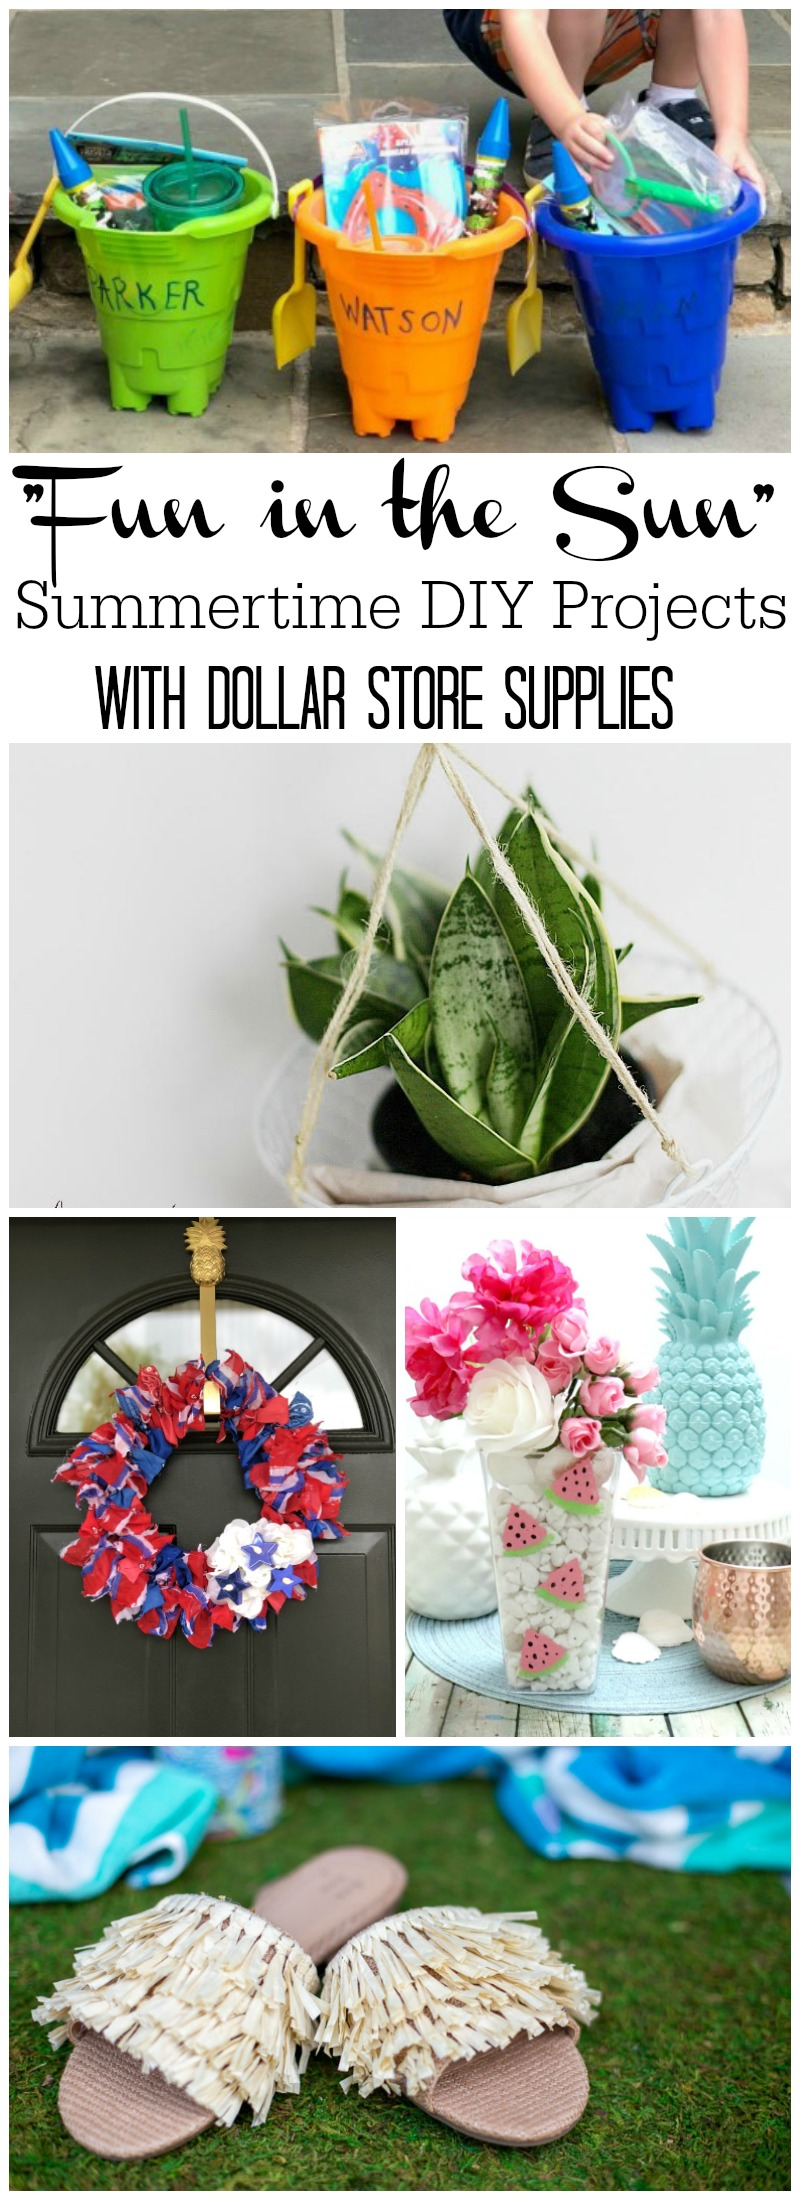 Fun in the Sun - Summertime DIY projects with Dollar Store Supplies